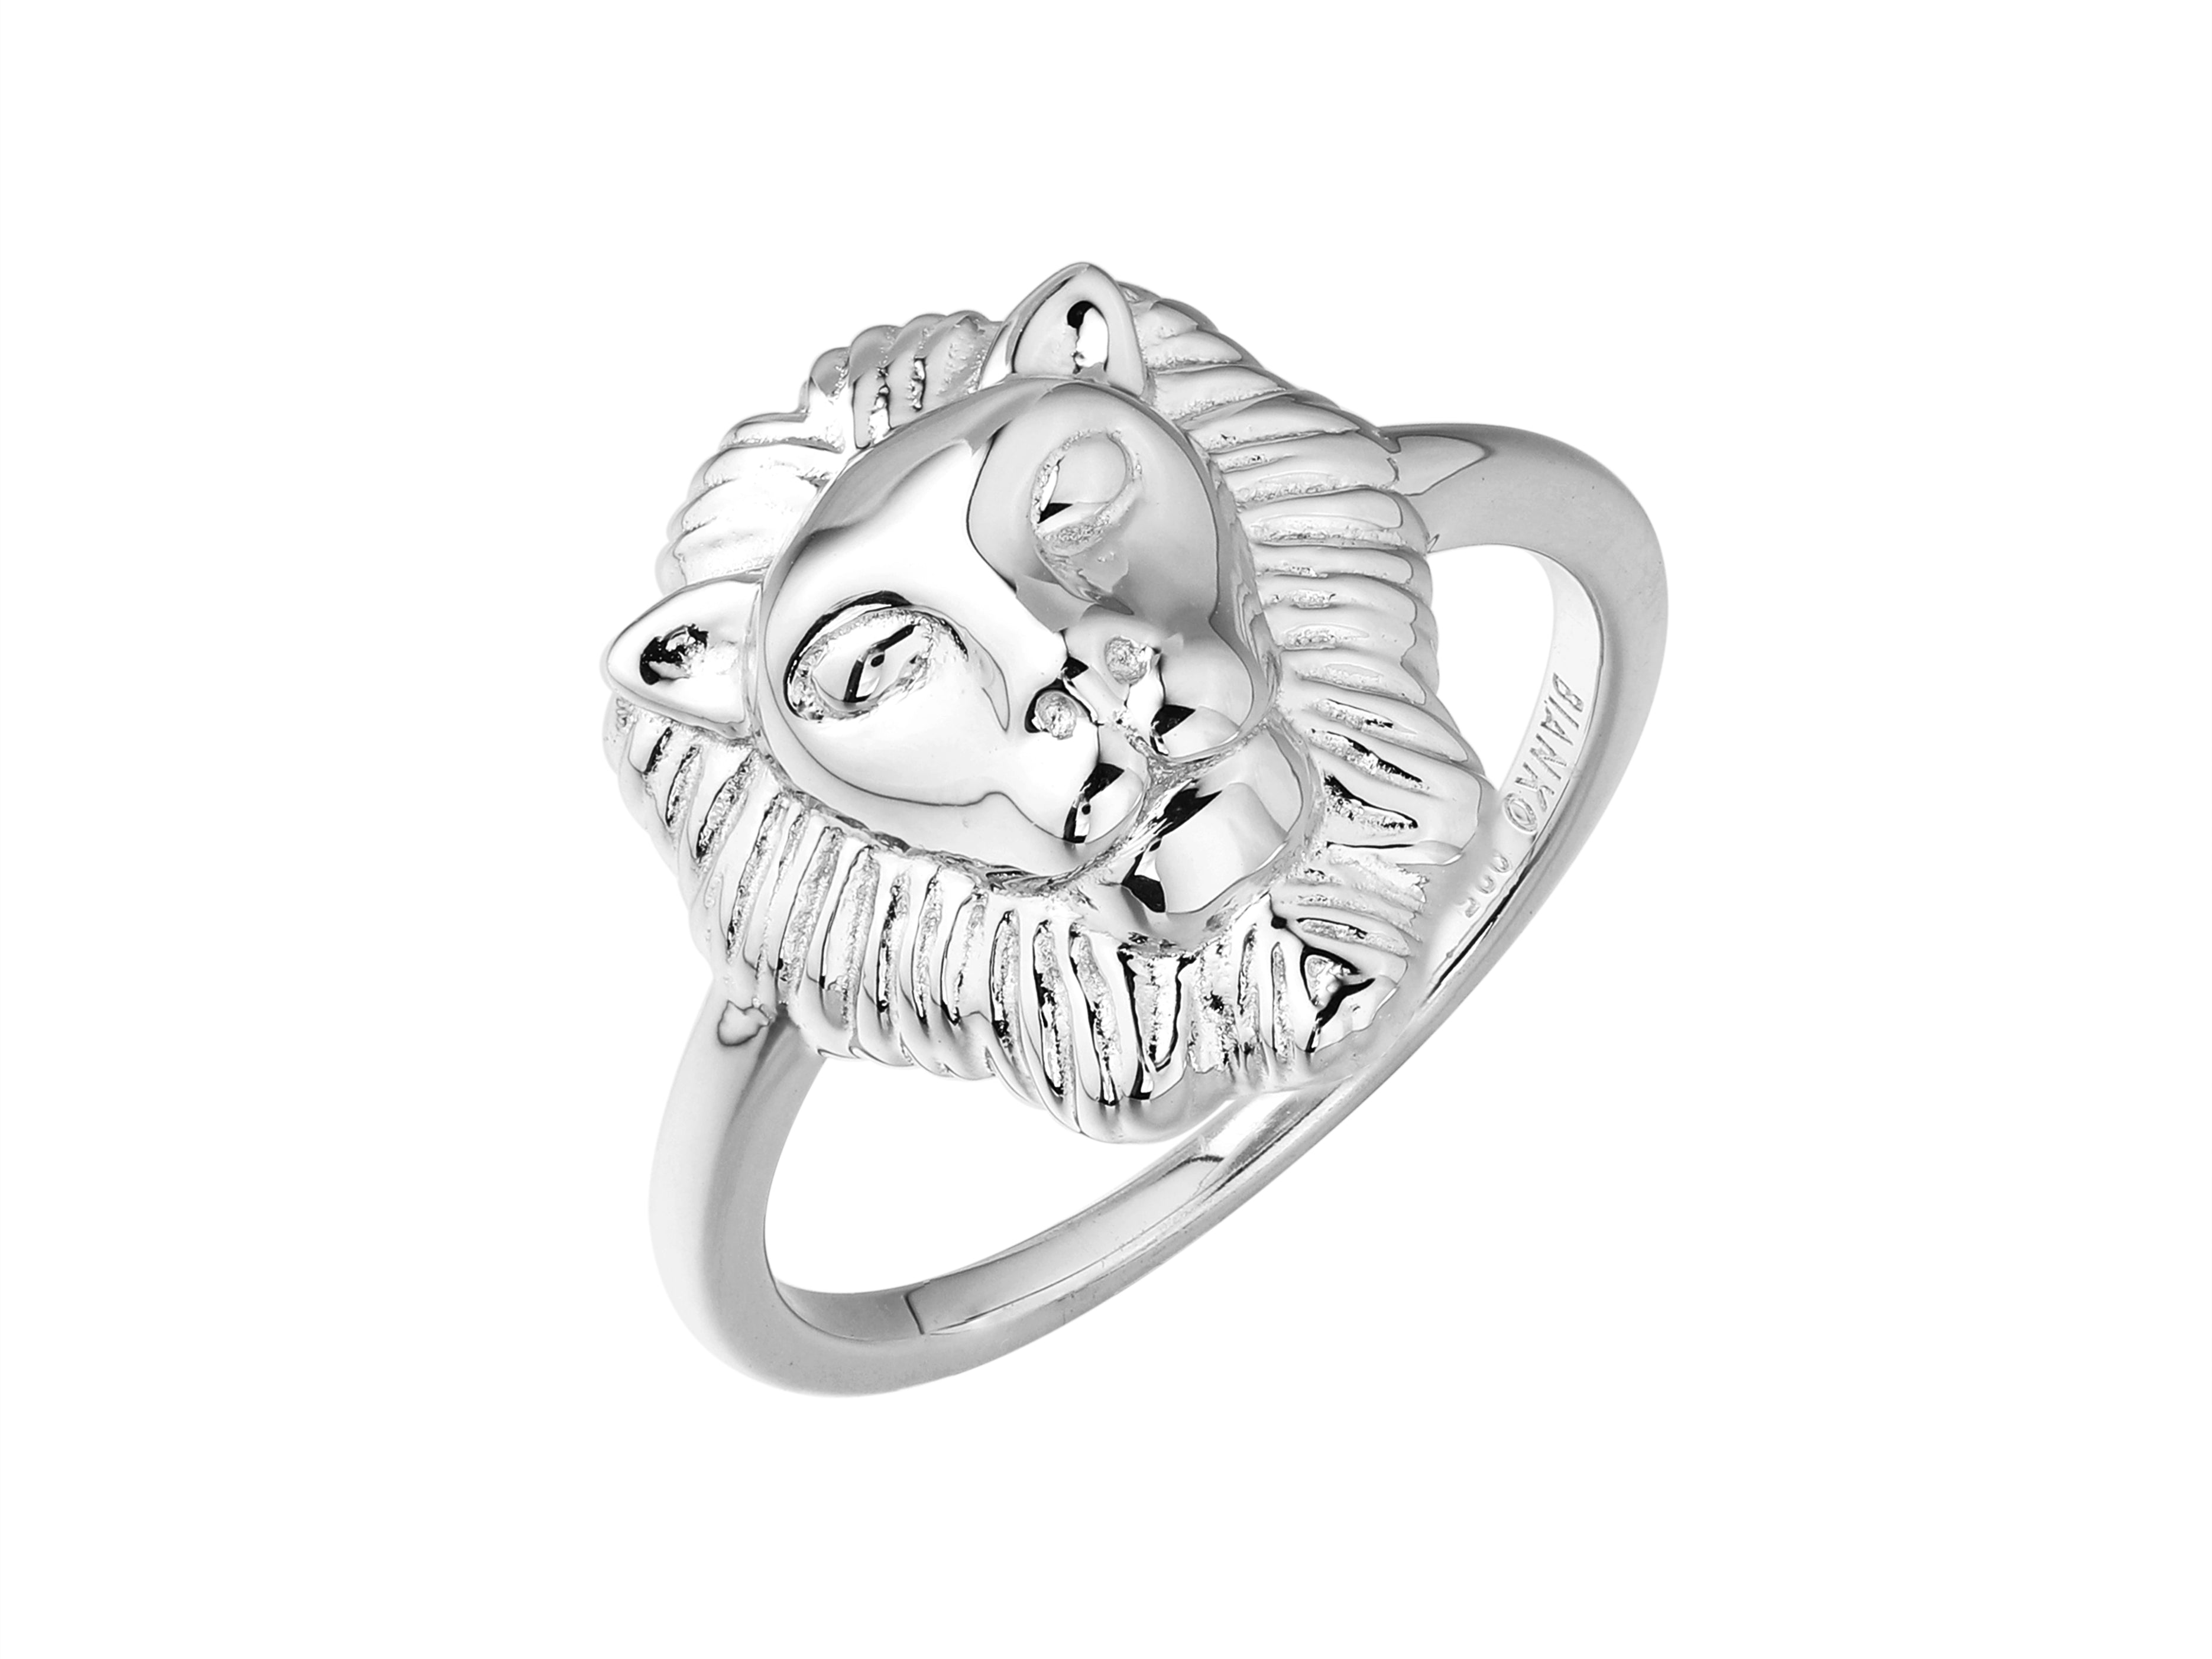 Artemis lion head ring, sterling silver, rhodium plated